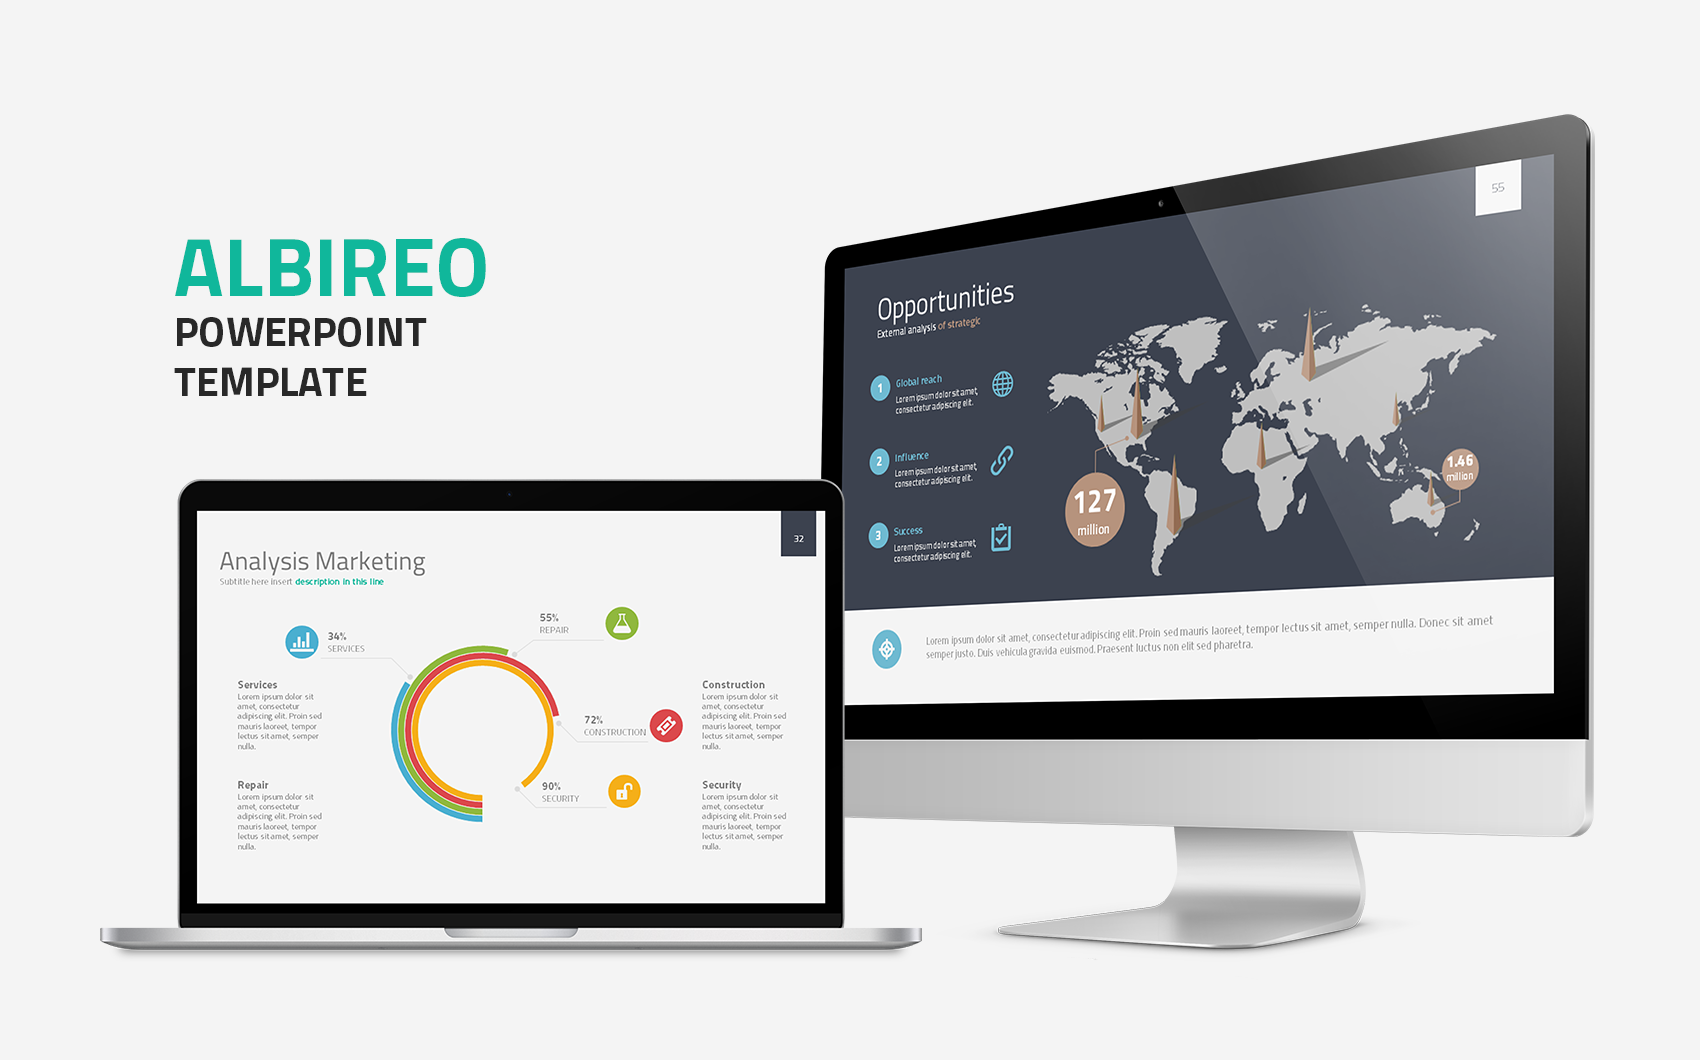 Albireo Powerpoint Template #64470